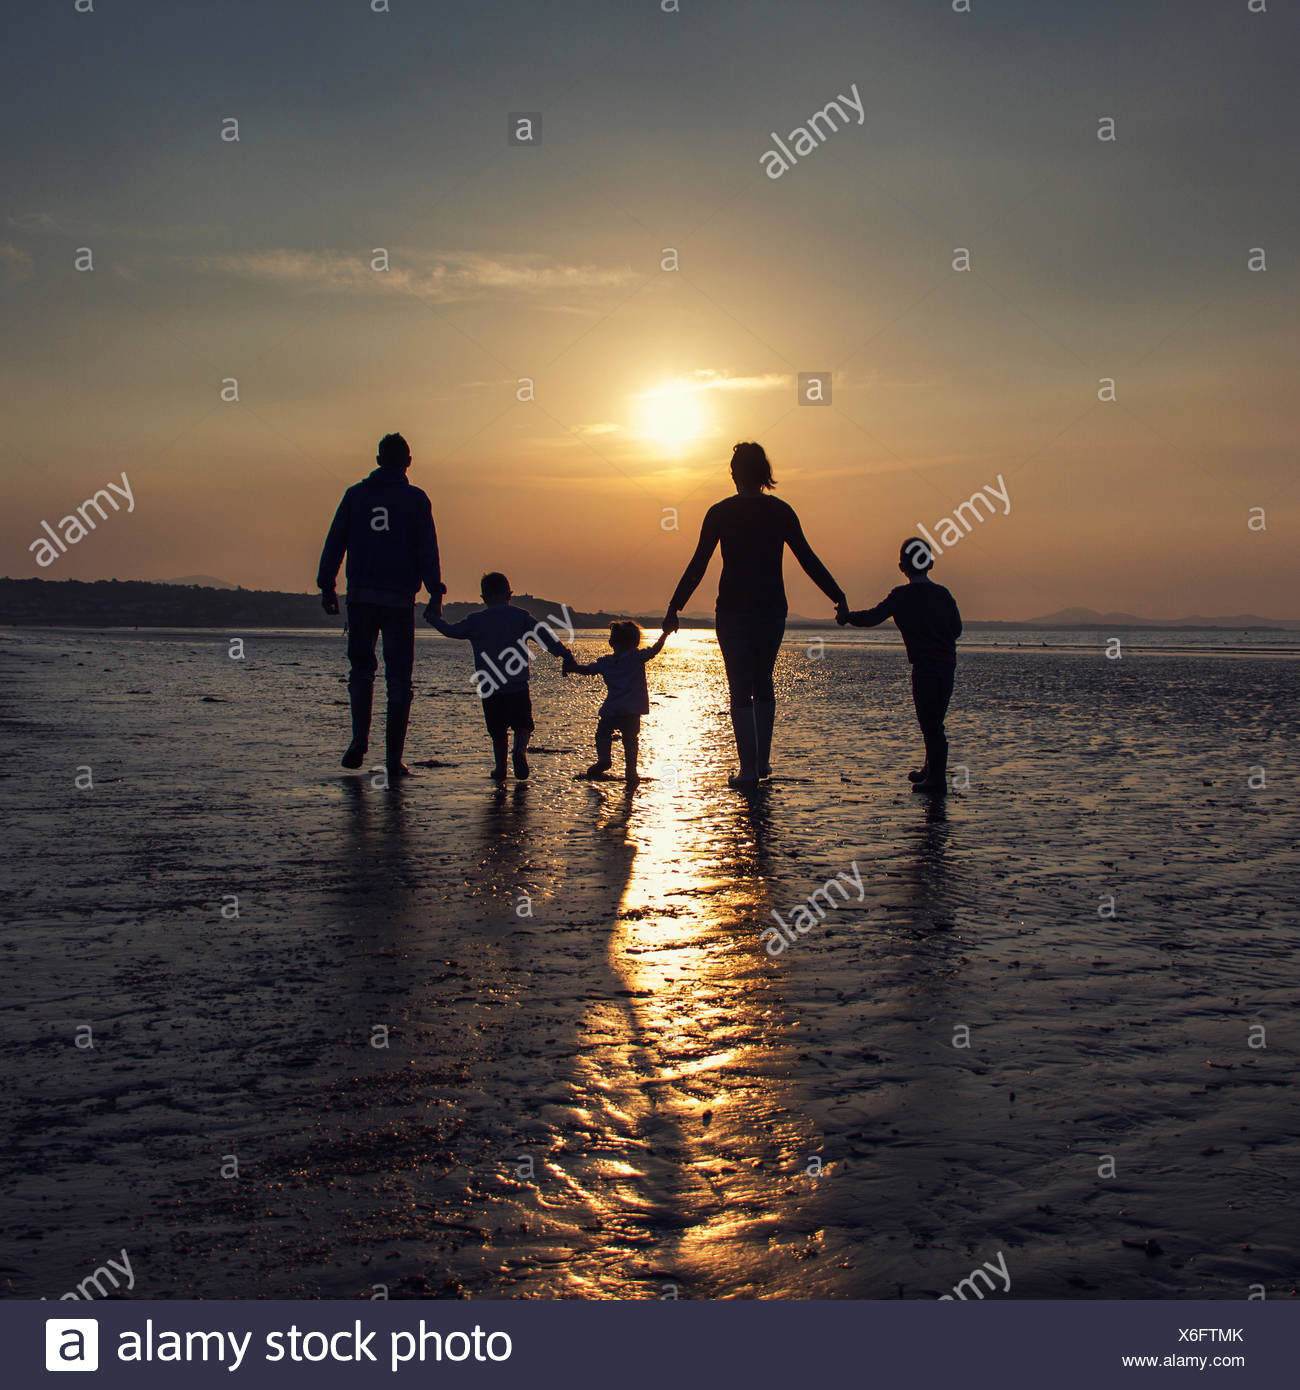 Silhouette of a Family on the beach holding hands - Stock Image